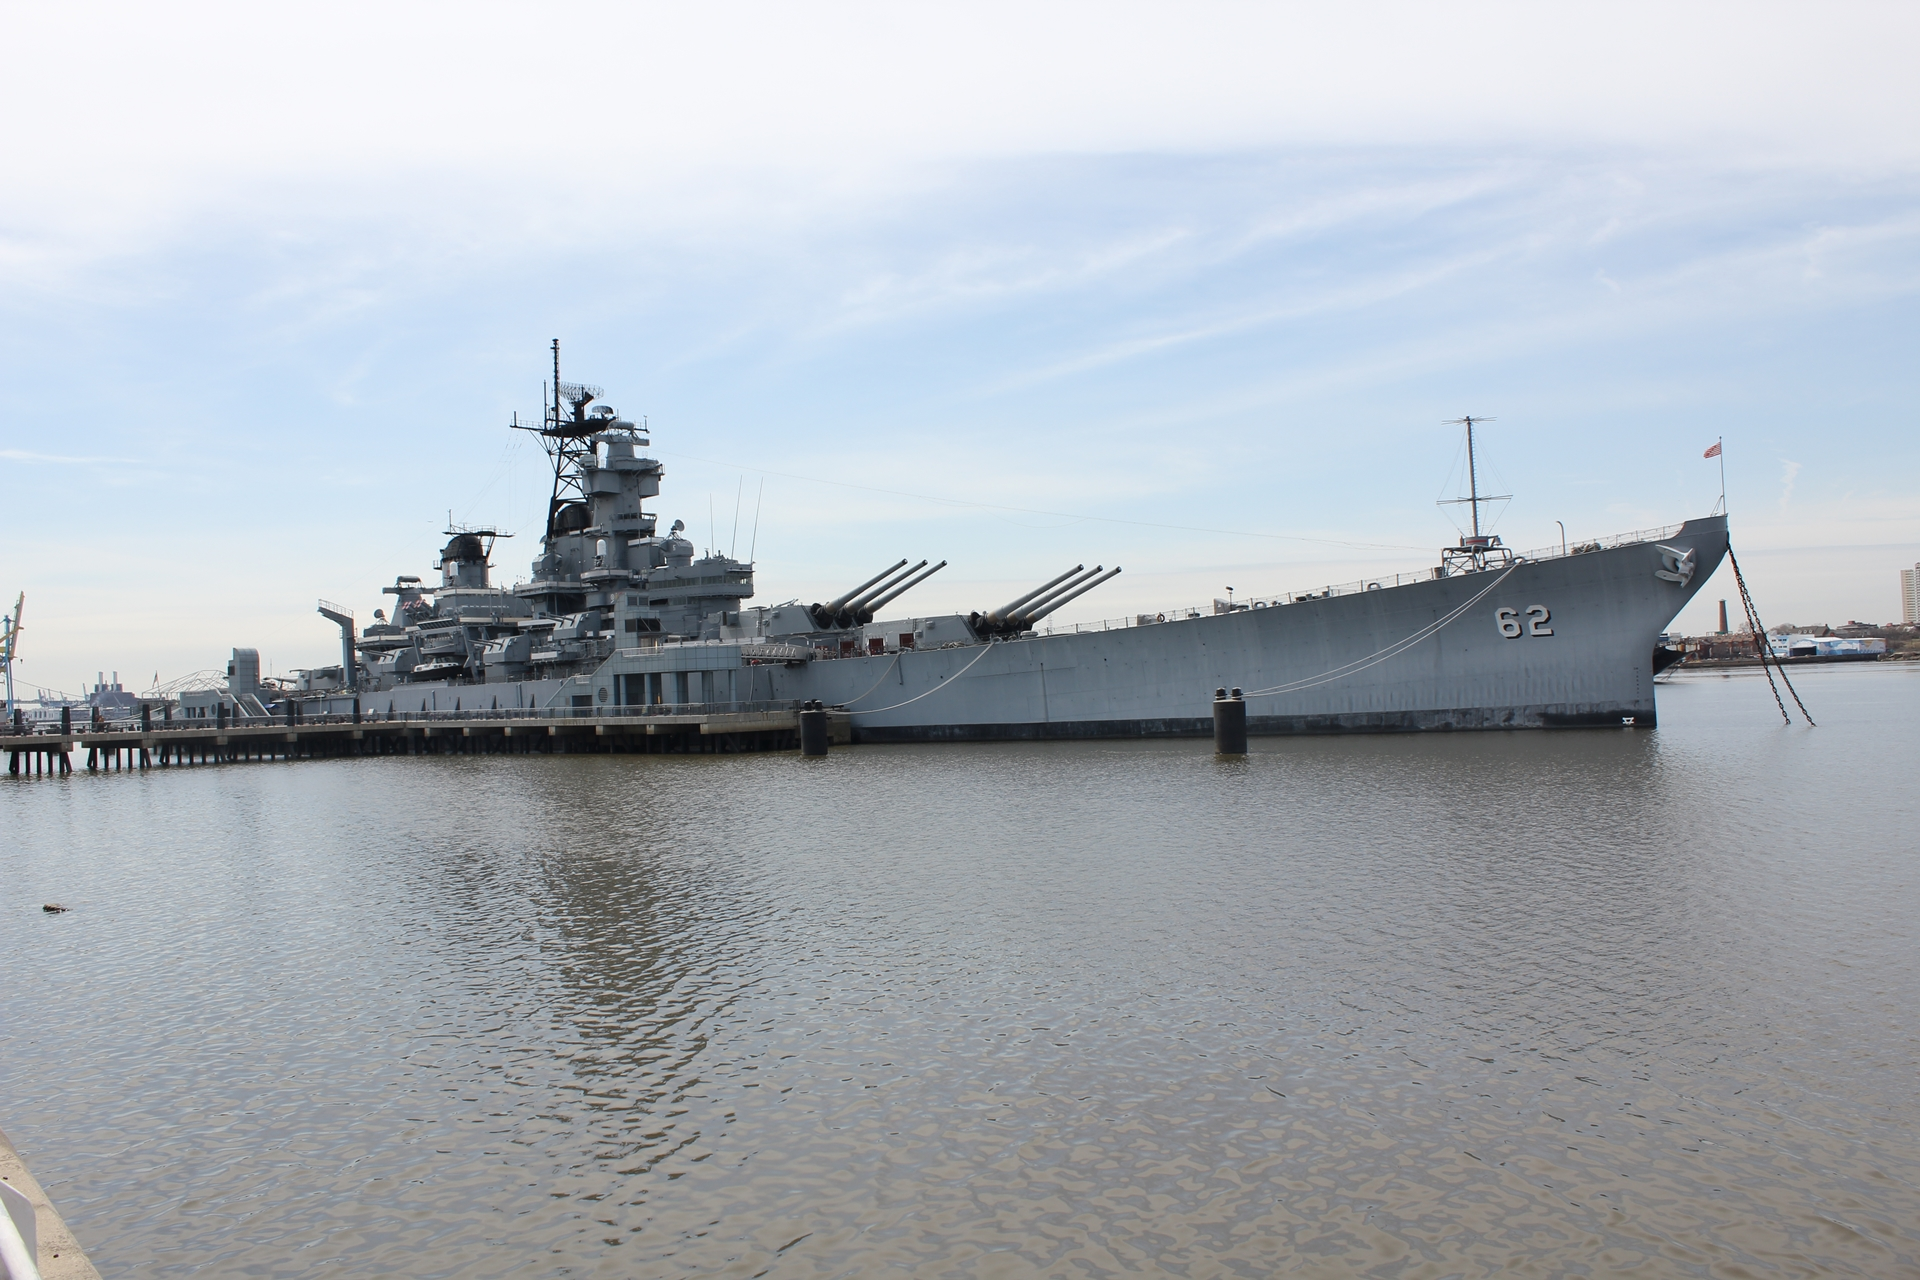 Download image Battleship Uss New Jersey PC, Android, iPhone and iPad ...